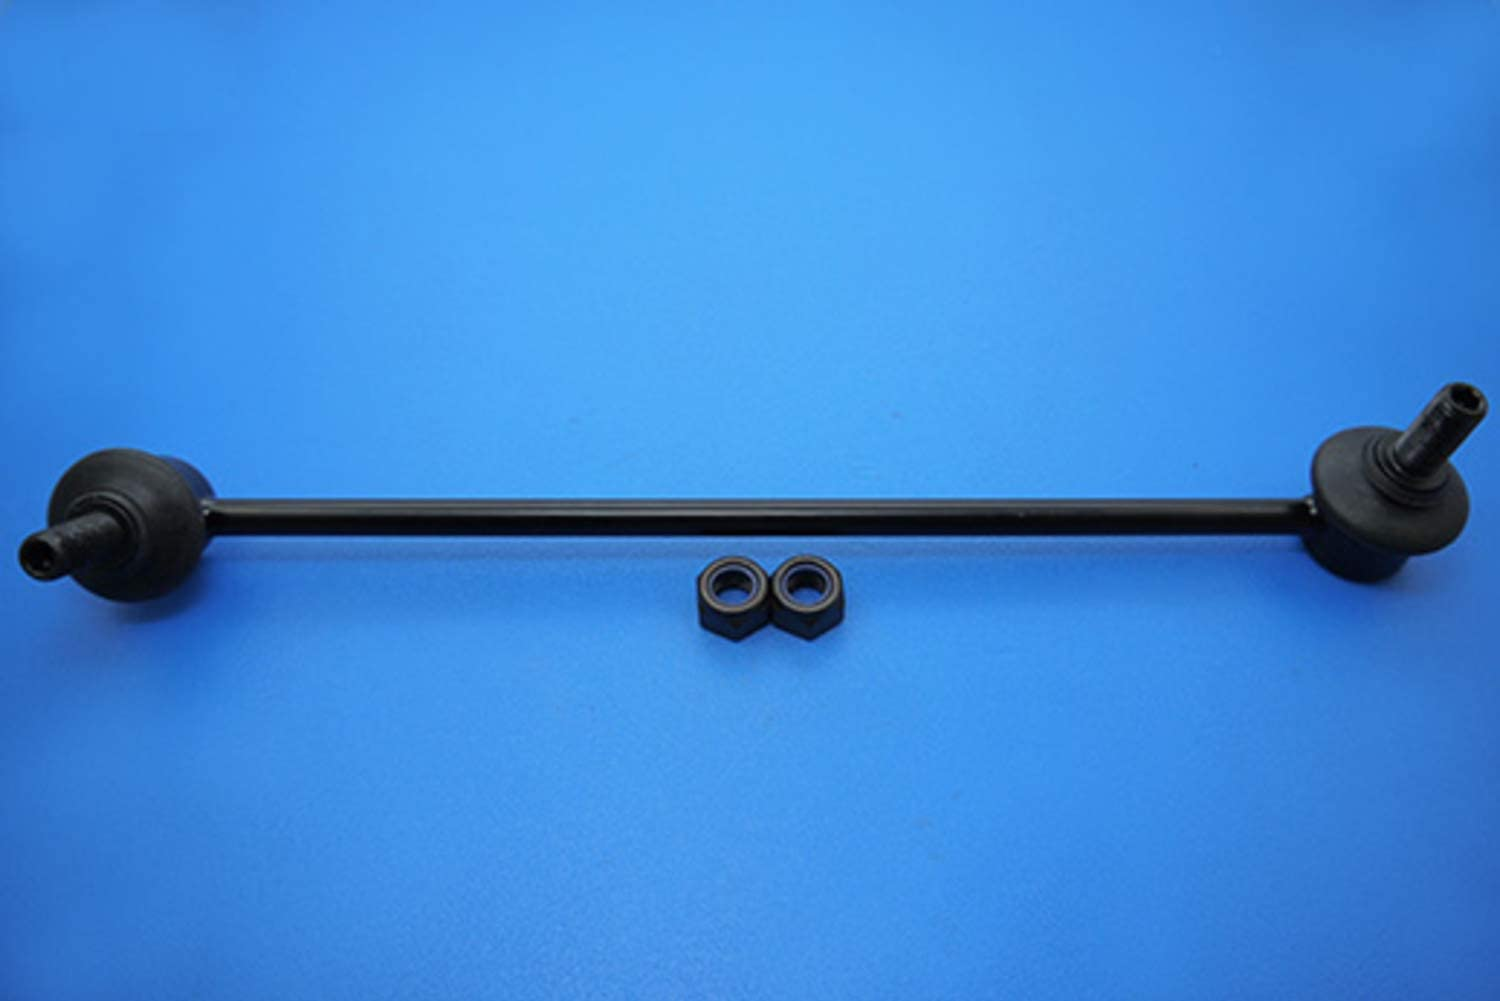 Package include One Sway Bar Link Only 2014 fits Kia Sedona Front Right Suspension Stabilizer Bar Link With Five Years Warranty